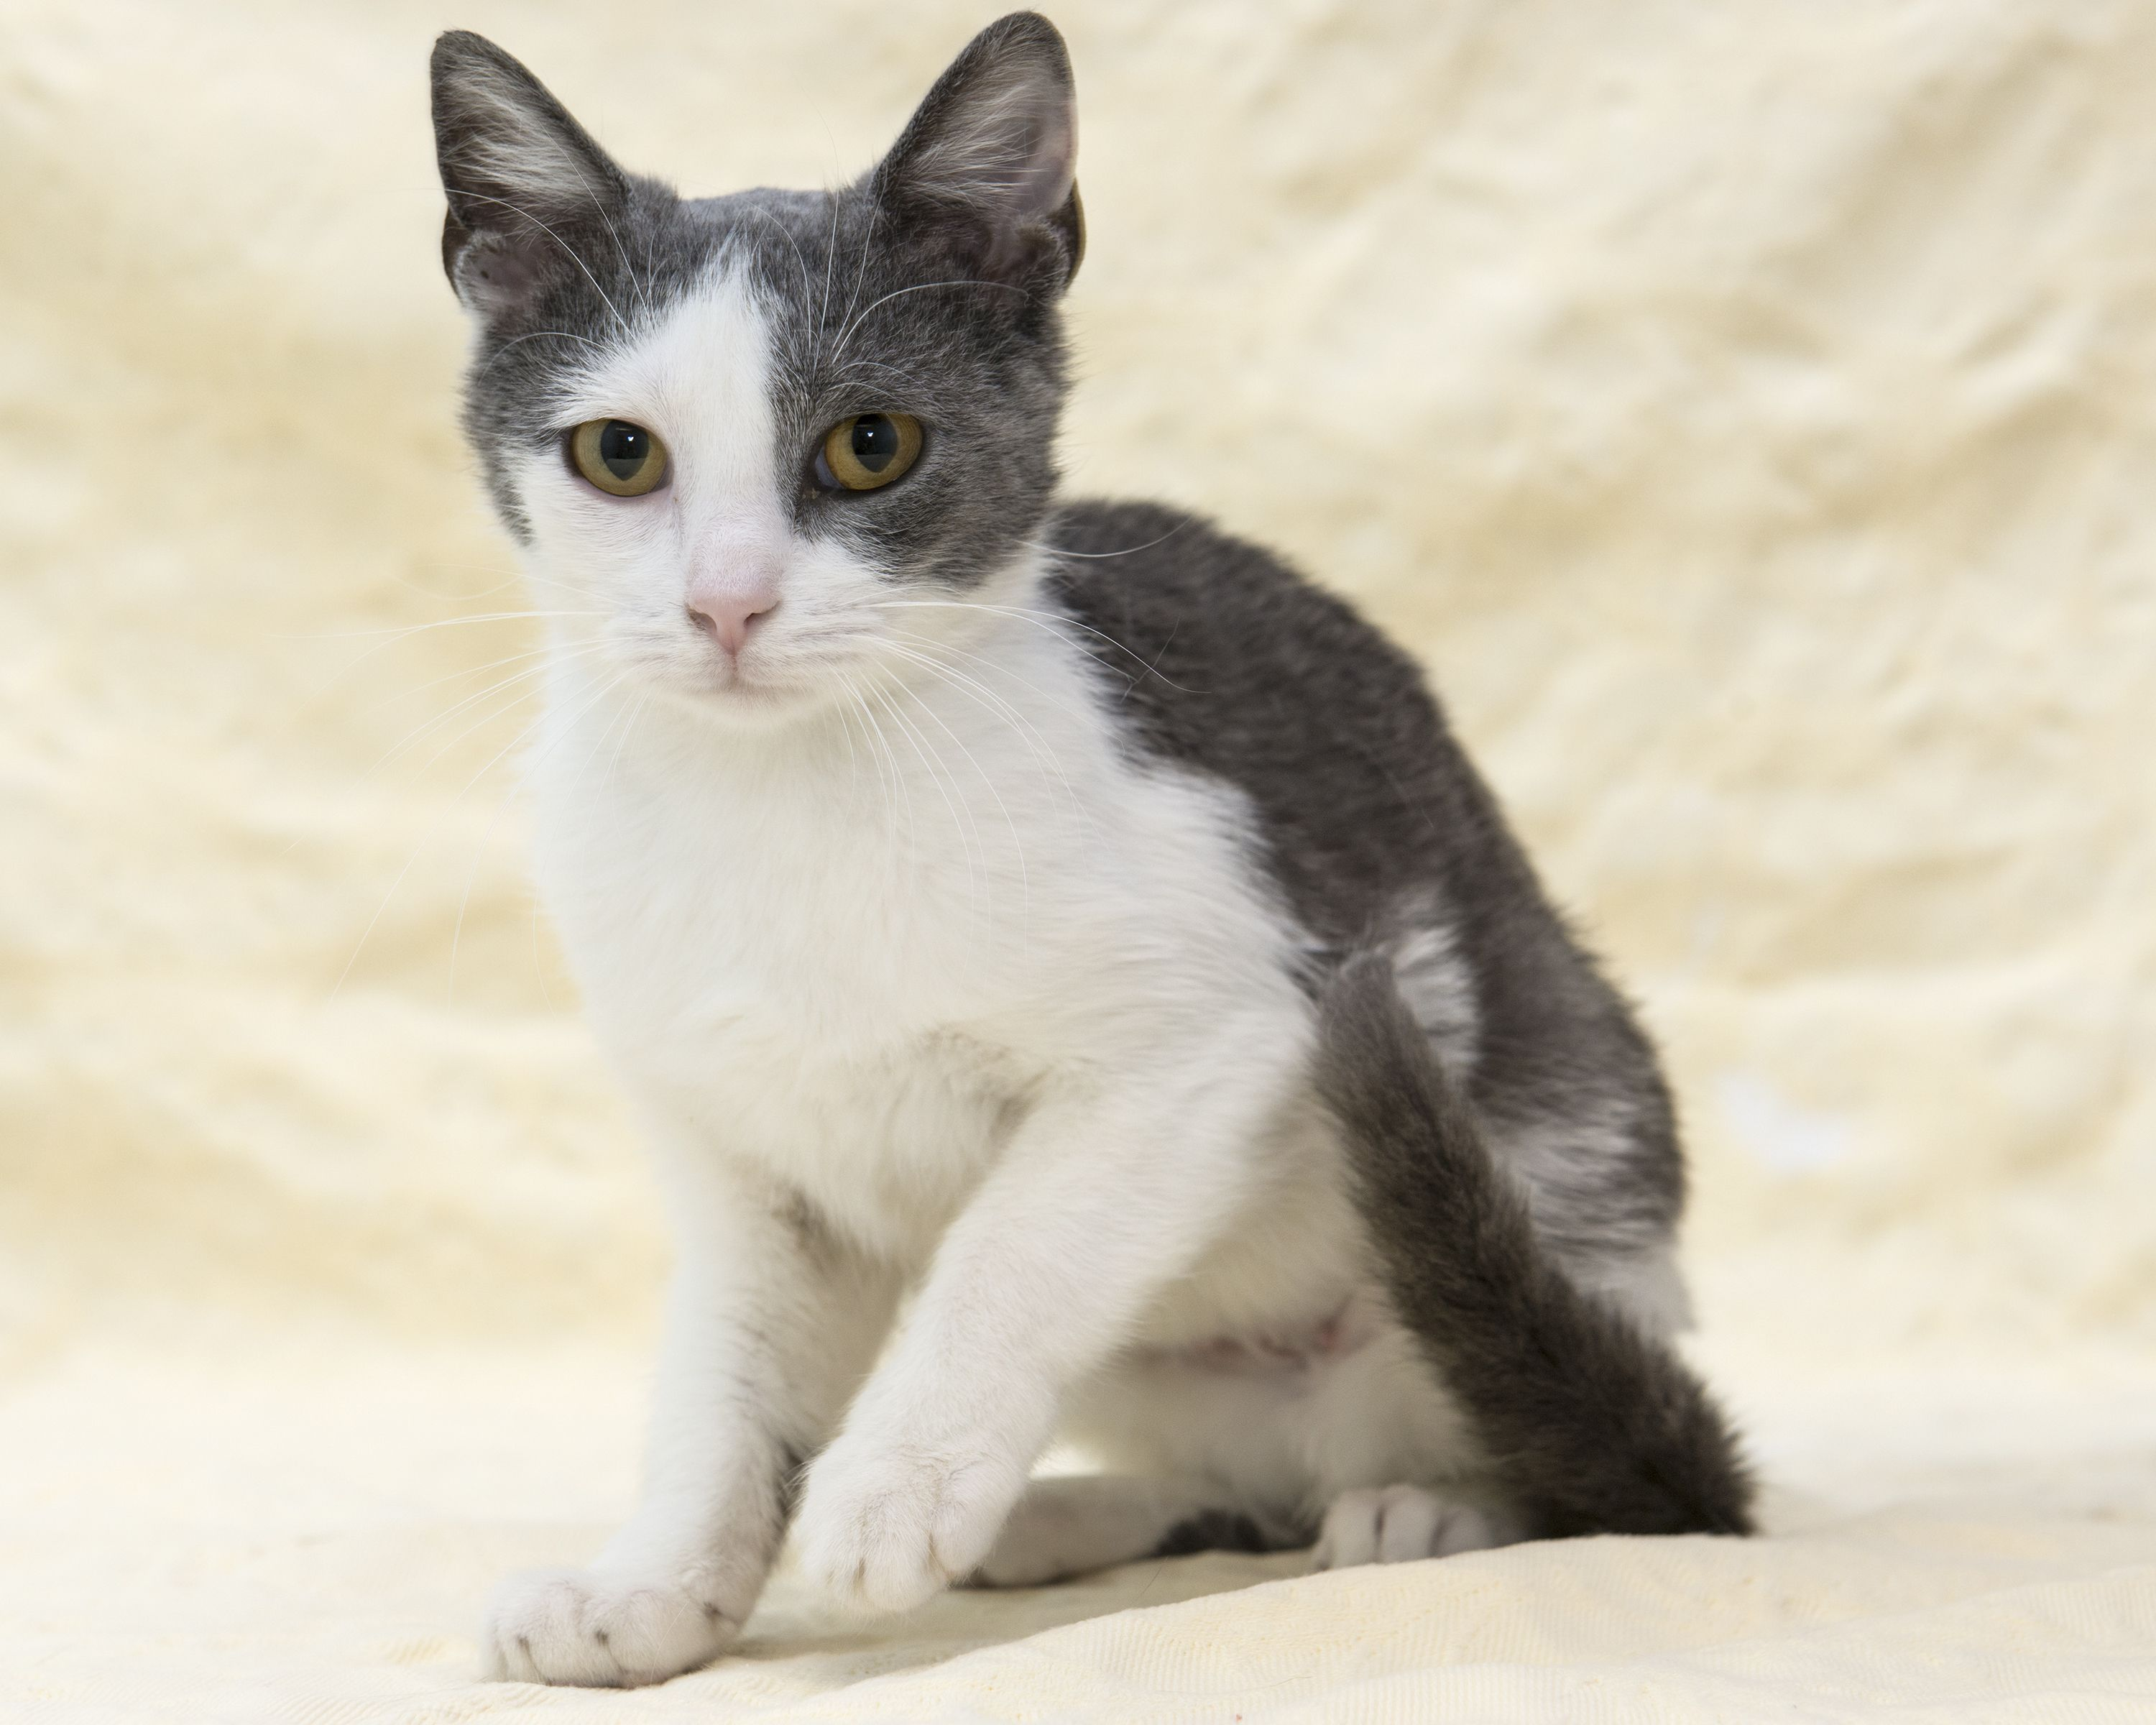 Lena Found Herself A Great Foreverhome On 4 3 14 Congrats Livessaved Opt2adopt Dontshopadopt Kittylove Humane Society Kitty Adoption